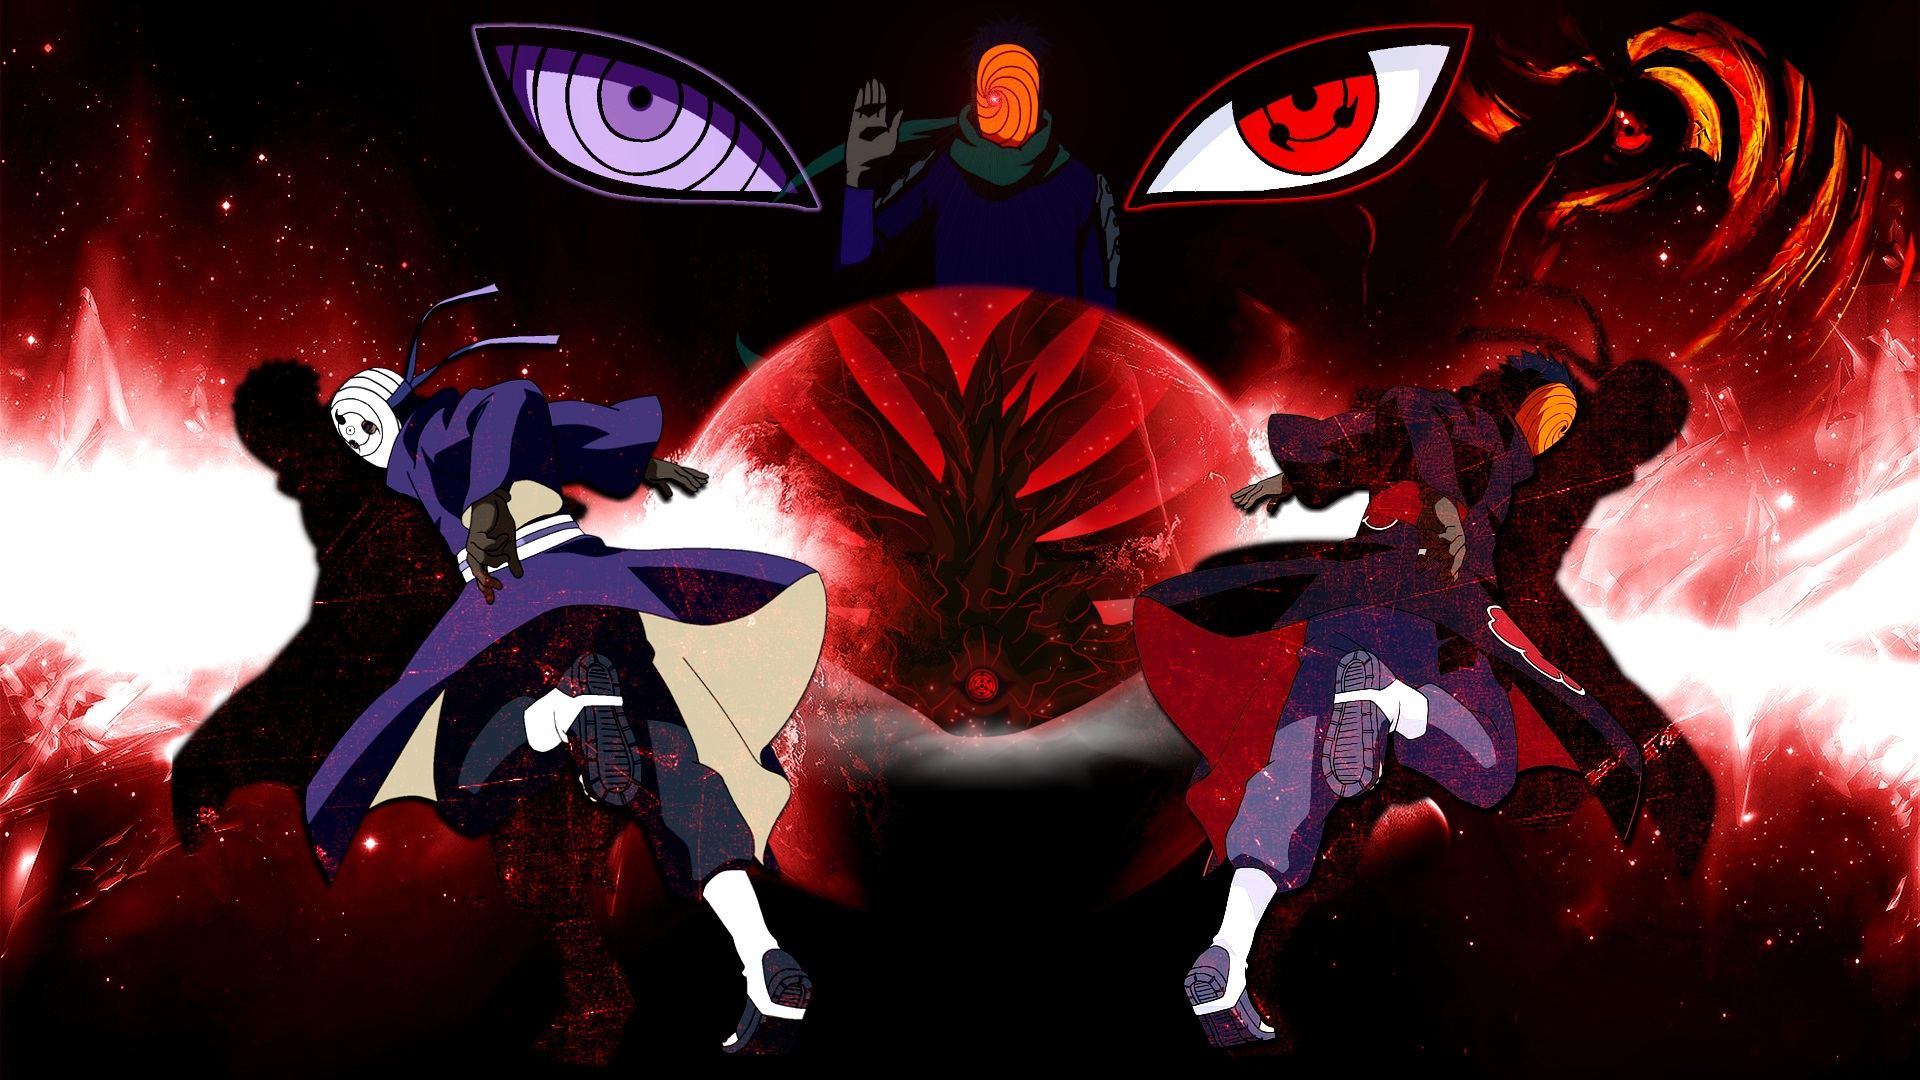 Uchiha Wallpaper 1920x1080